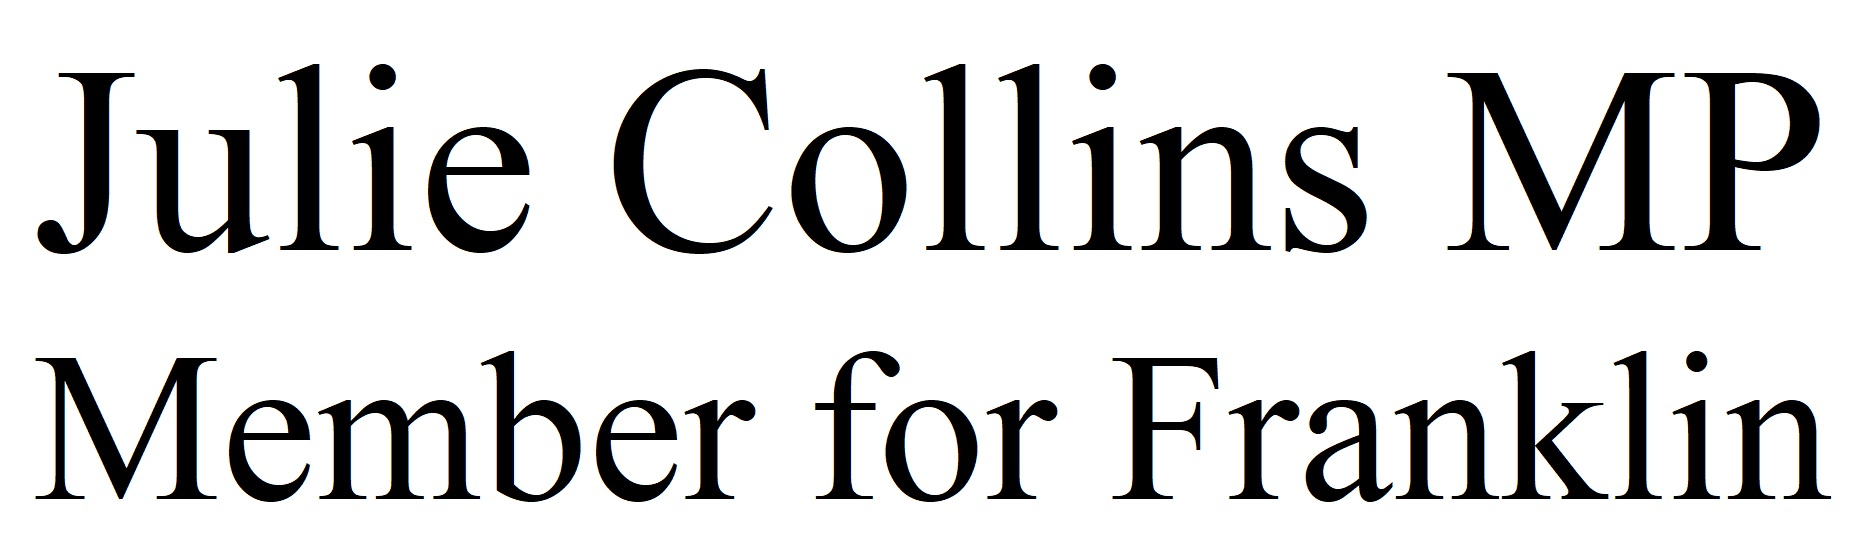 julie Collins logo